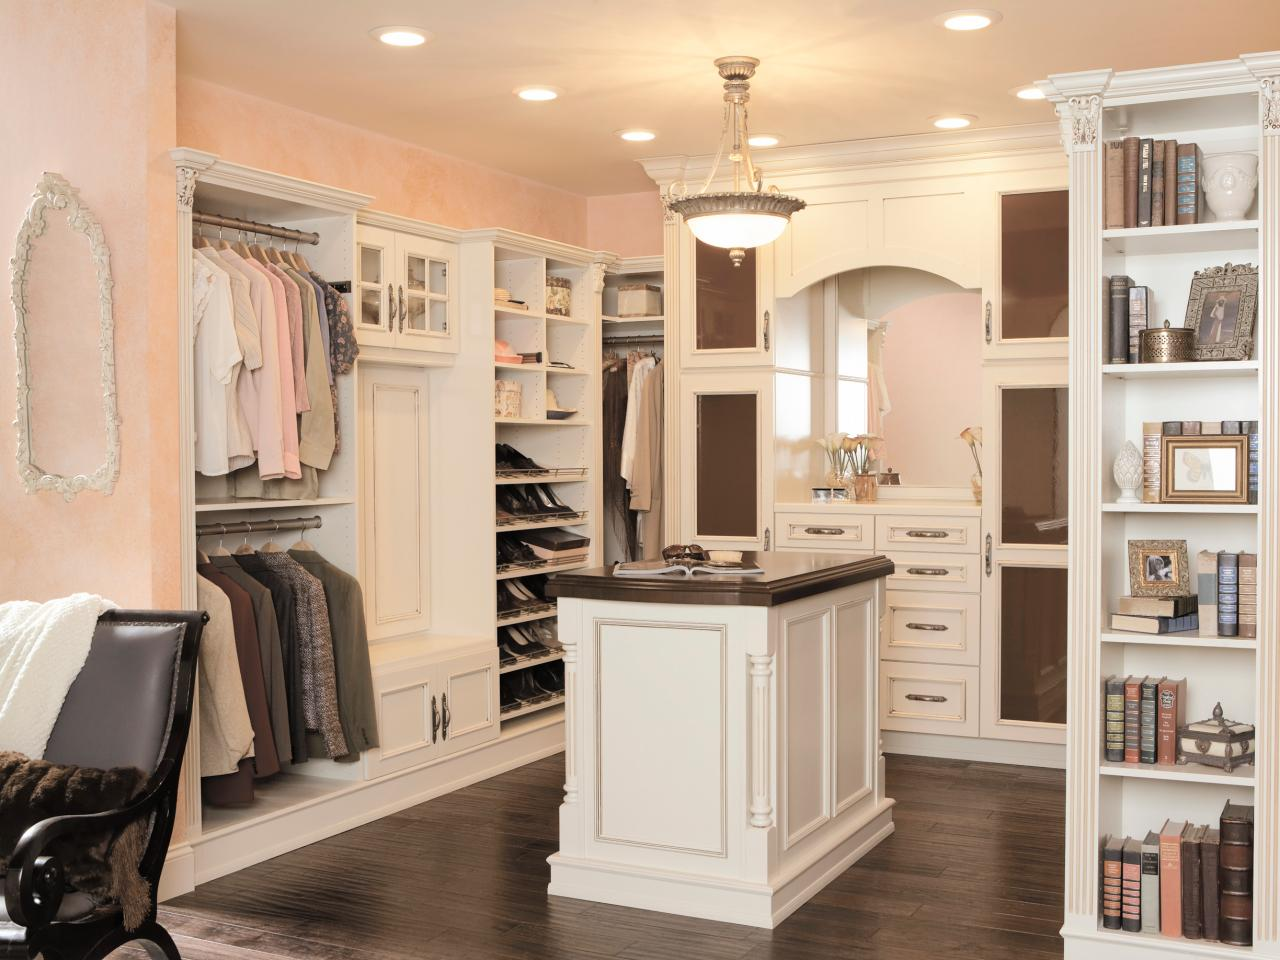 Press-Kits_Wellborn-Cabinets-closet-island